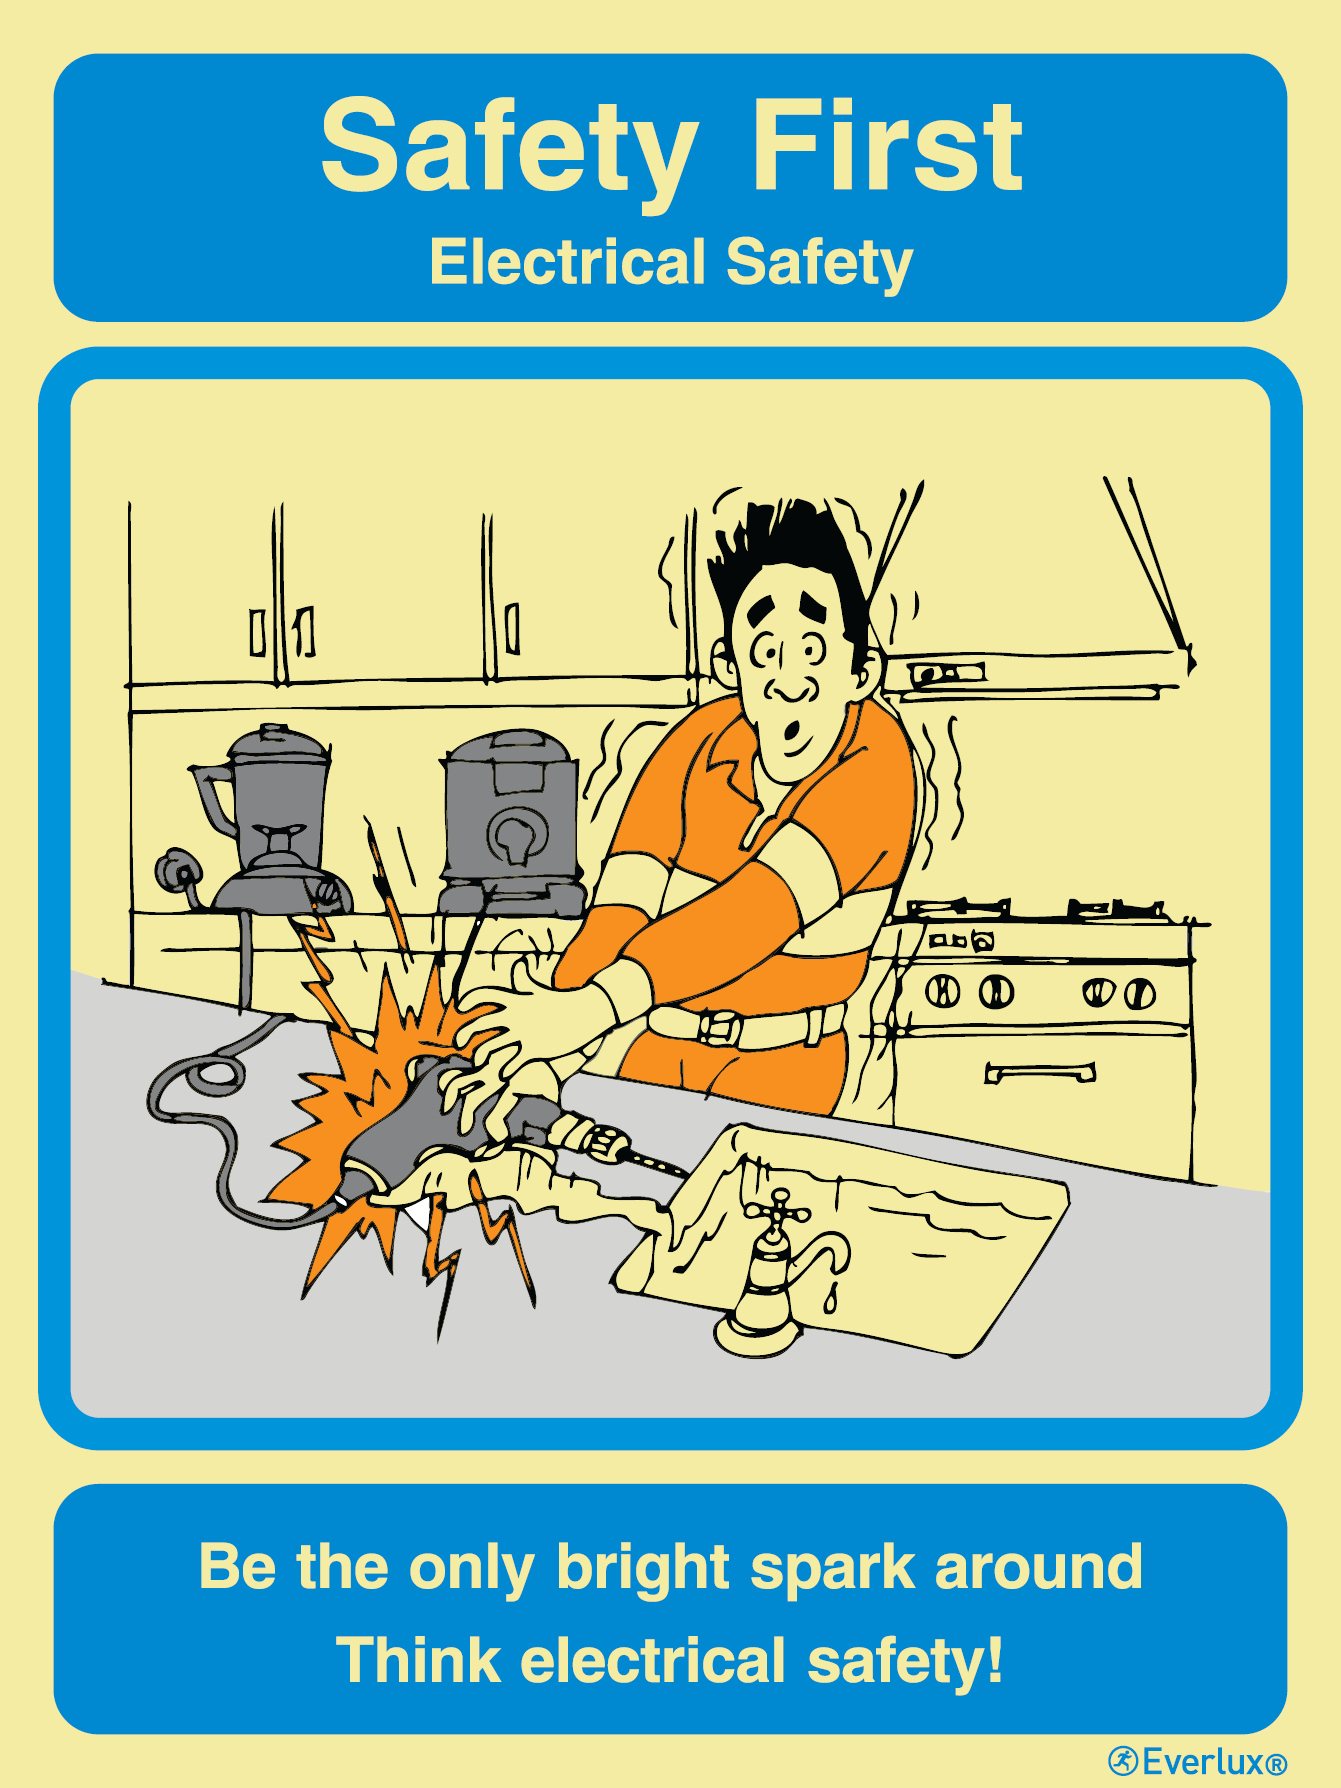 General Safety Awareness Notices Product Range Everlux